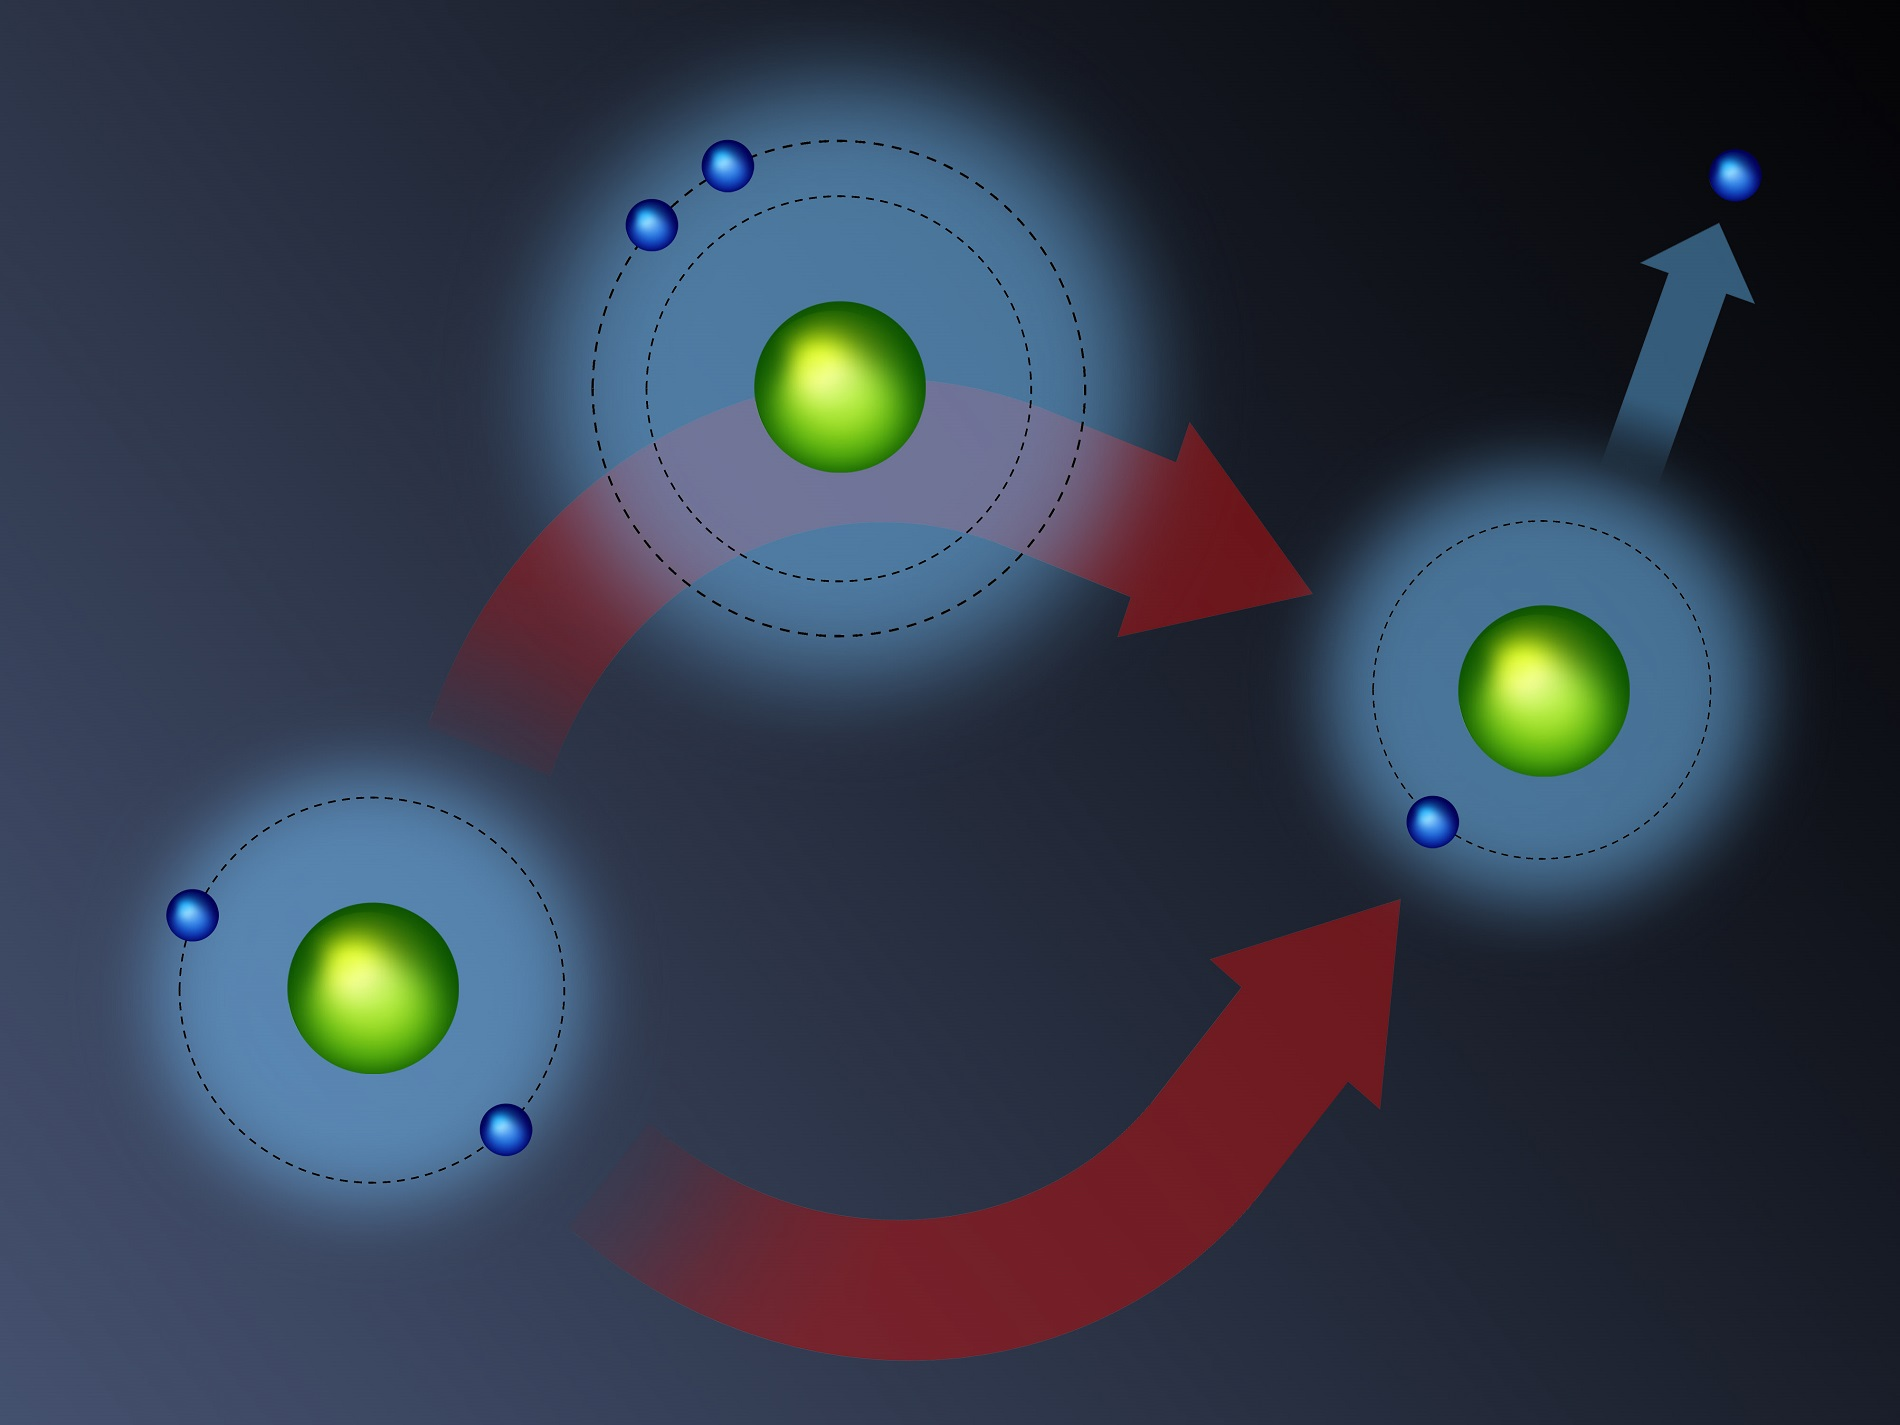 There are two different ways the helium atom can be ionized